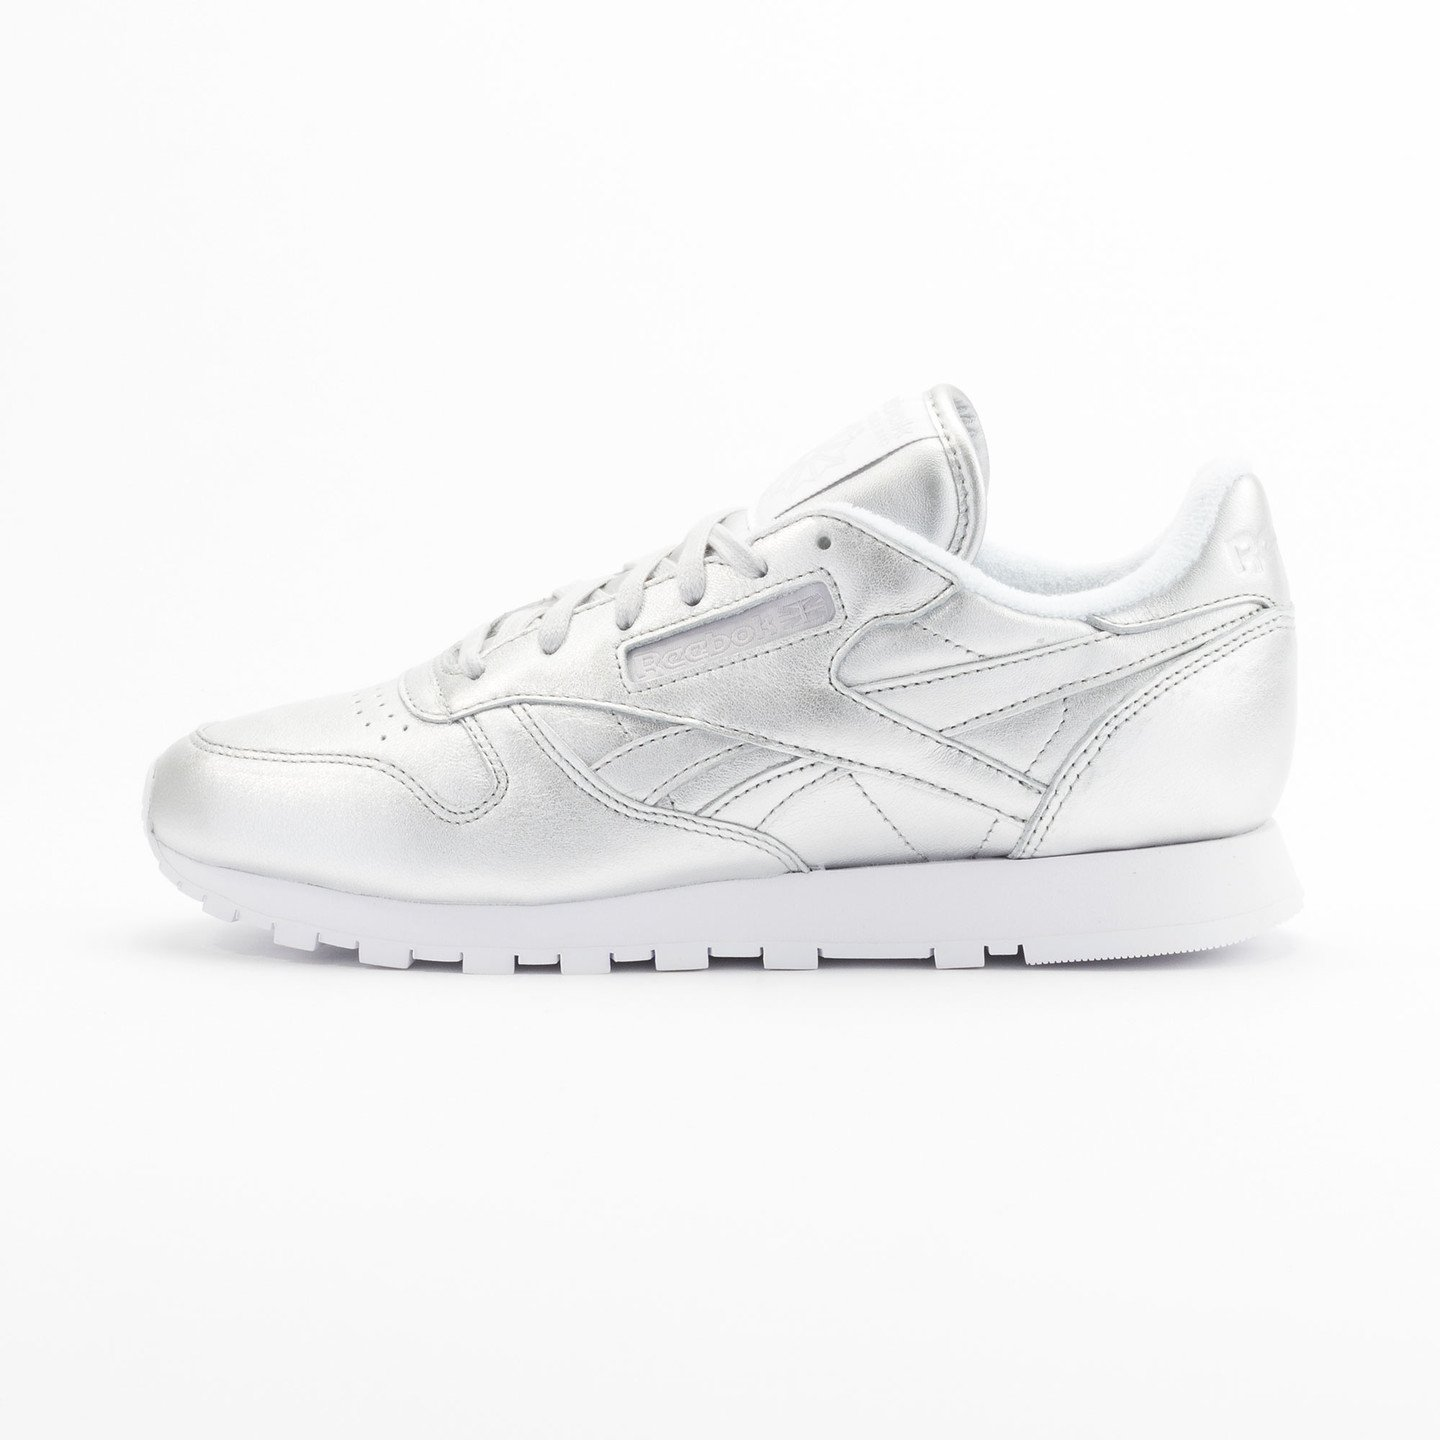 Reebok Classic Leather Spirit Presence Silver / White V62700-41